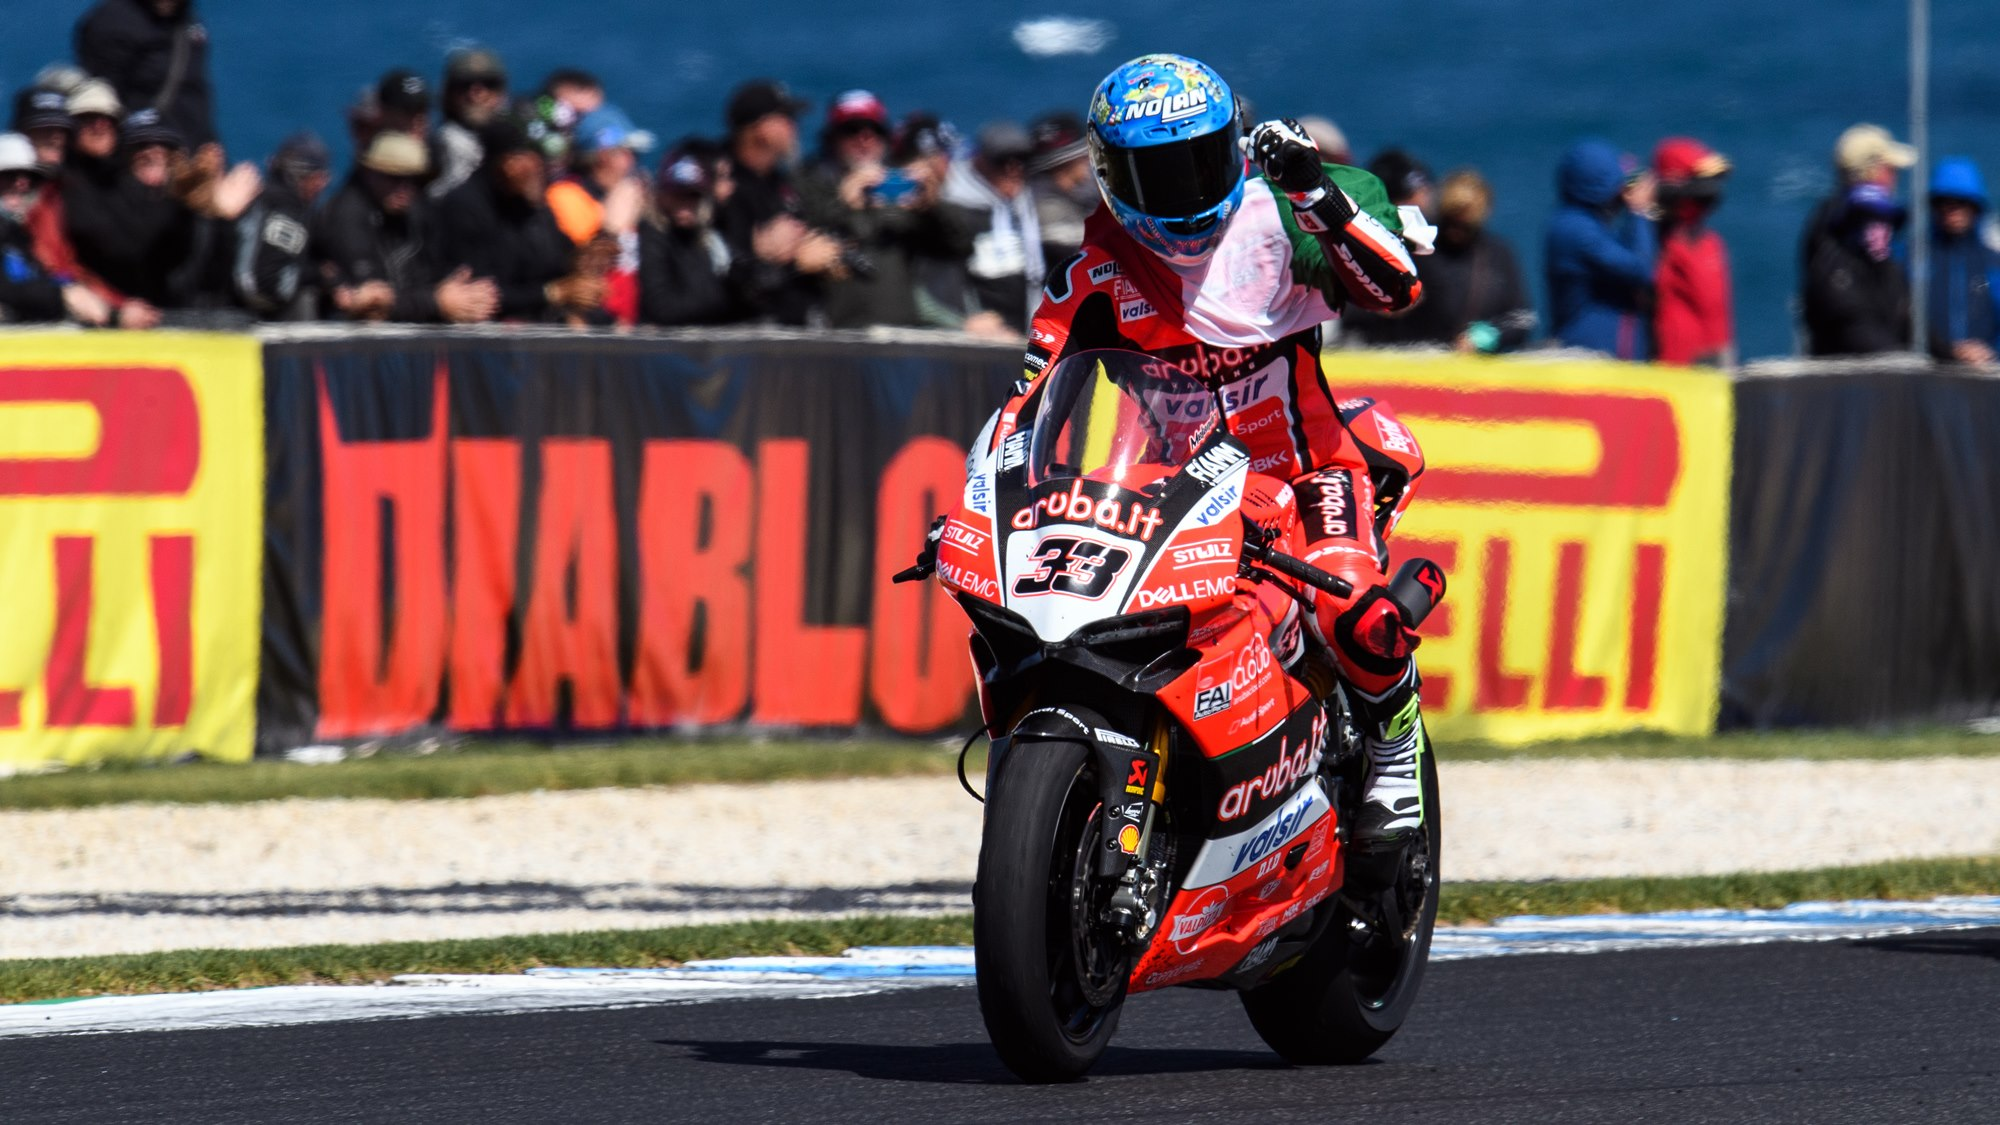 Marco Melandri takes double win at WSBK Phillip Island